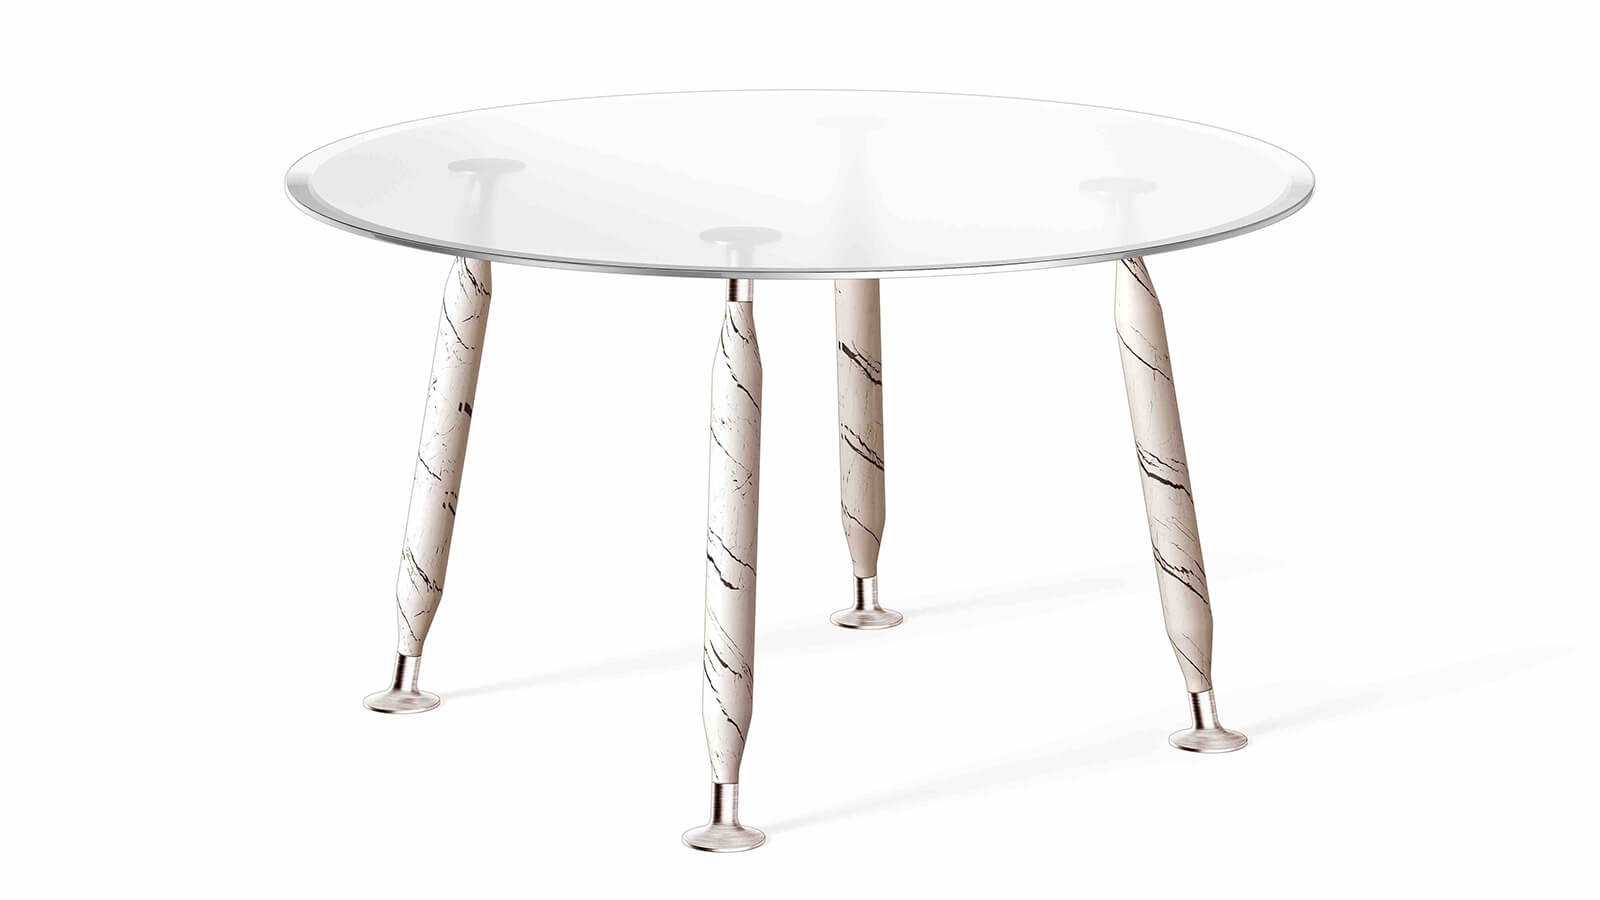 LADY HIO, DESIGNED BY PHILIPPE STARCK WITH SERGIO SCHITO